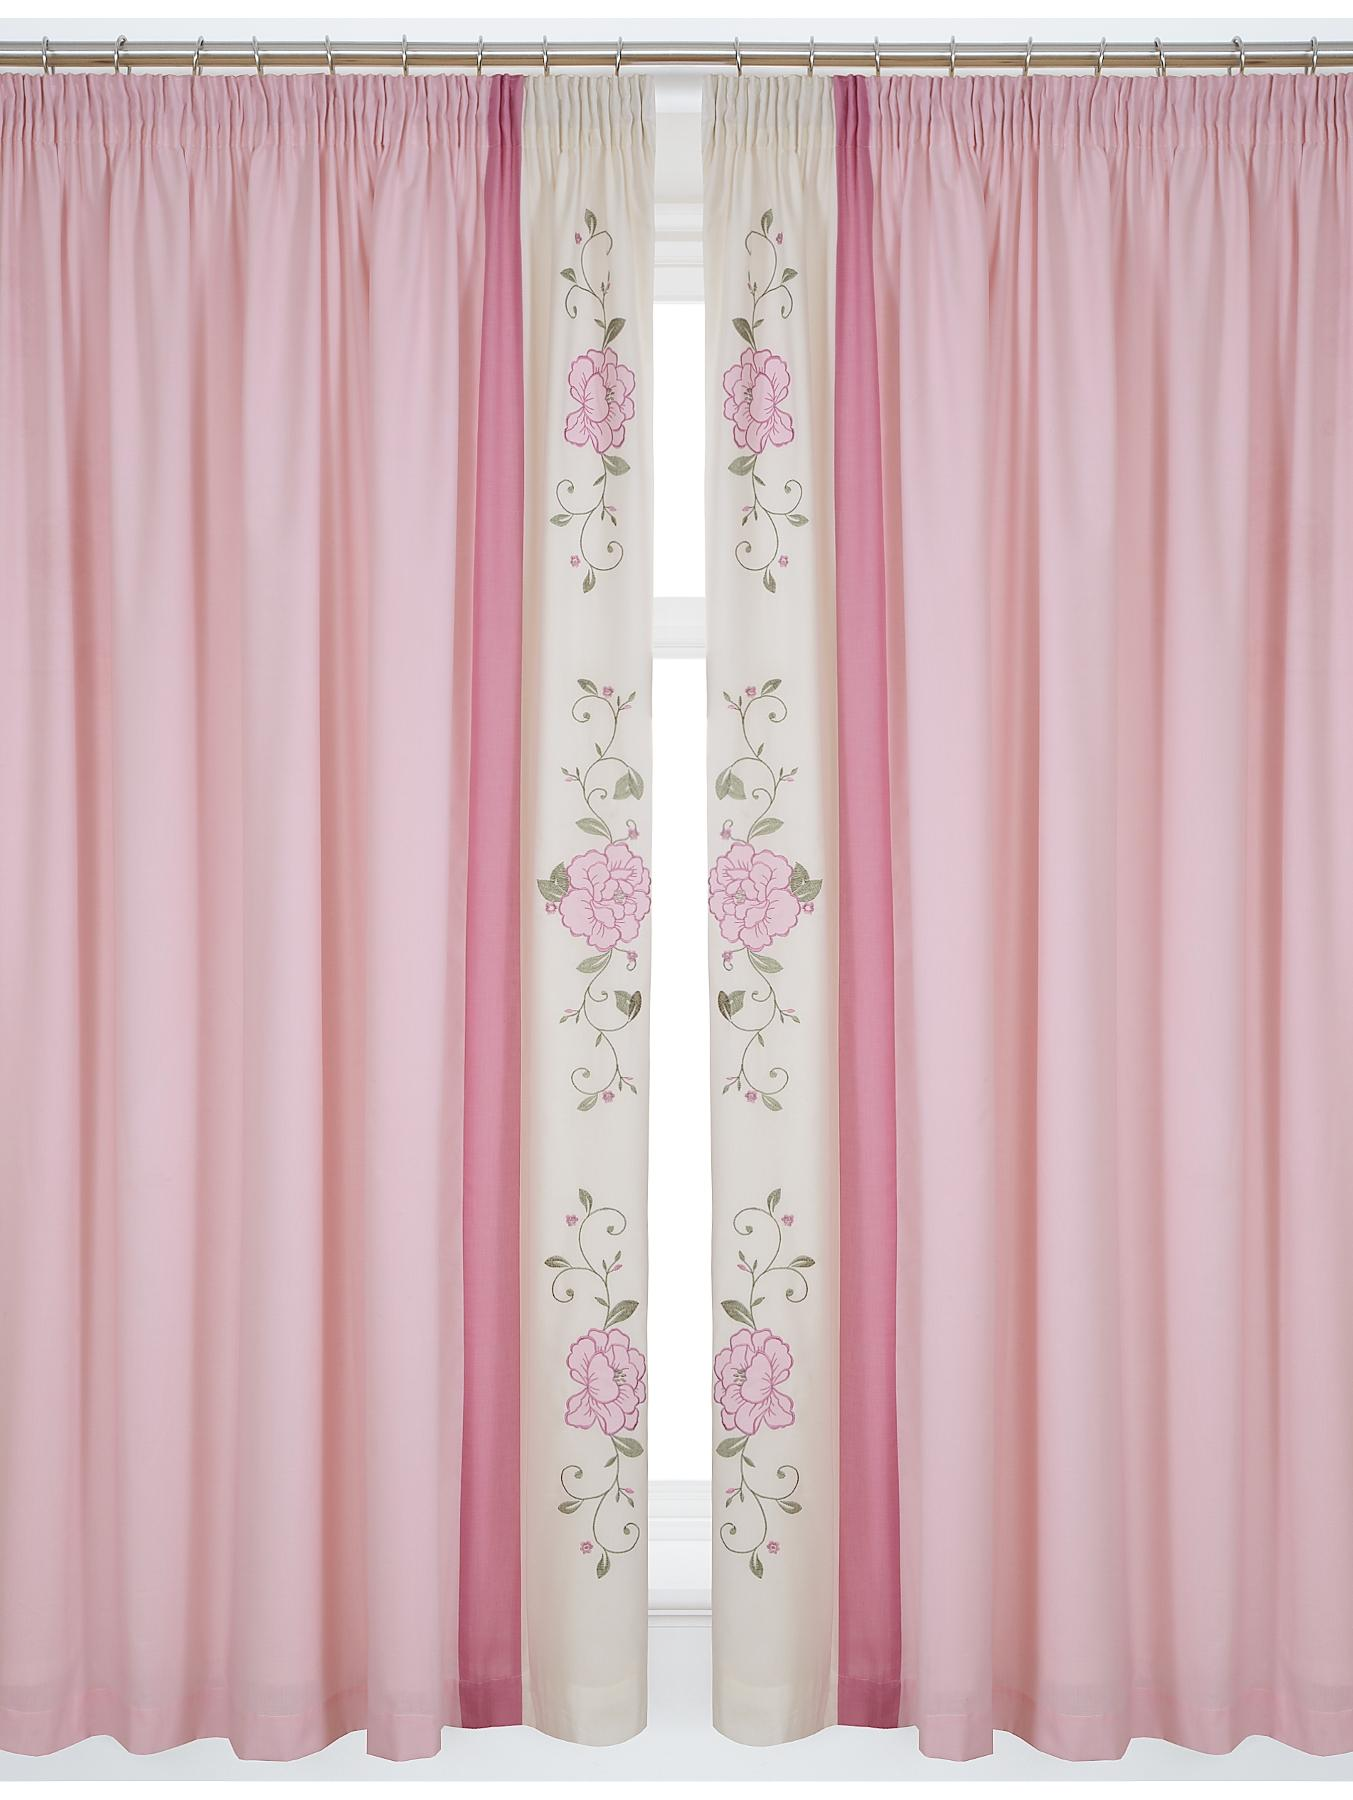 Angelena Lined 3 inch Header Curtains with Tie-backs - Pink, Pink